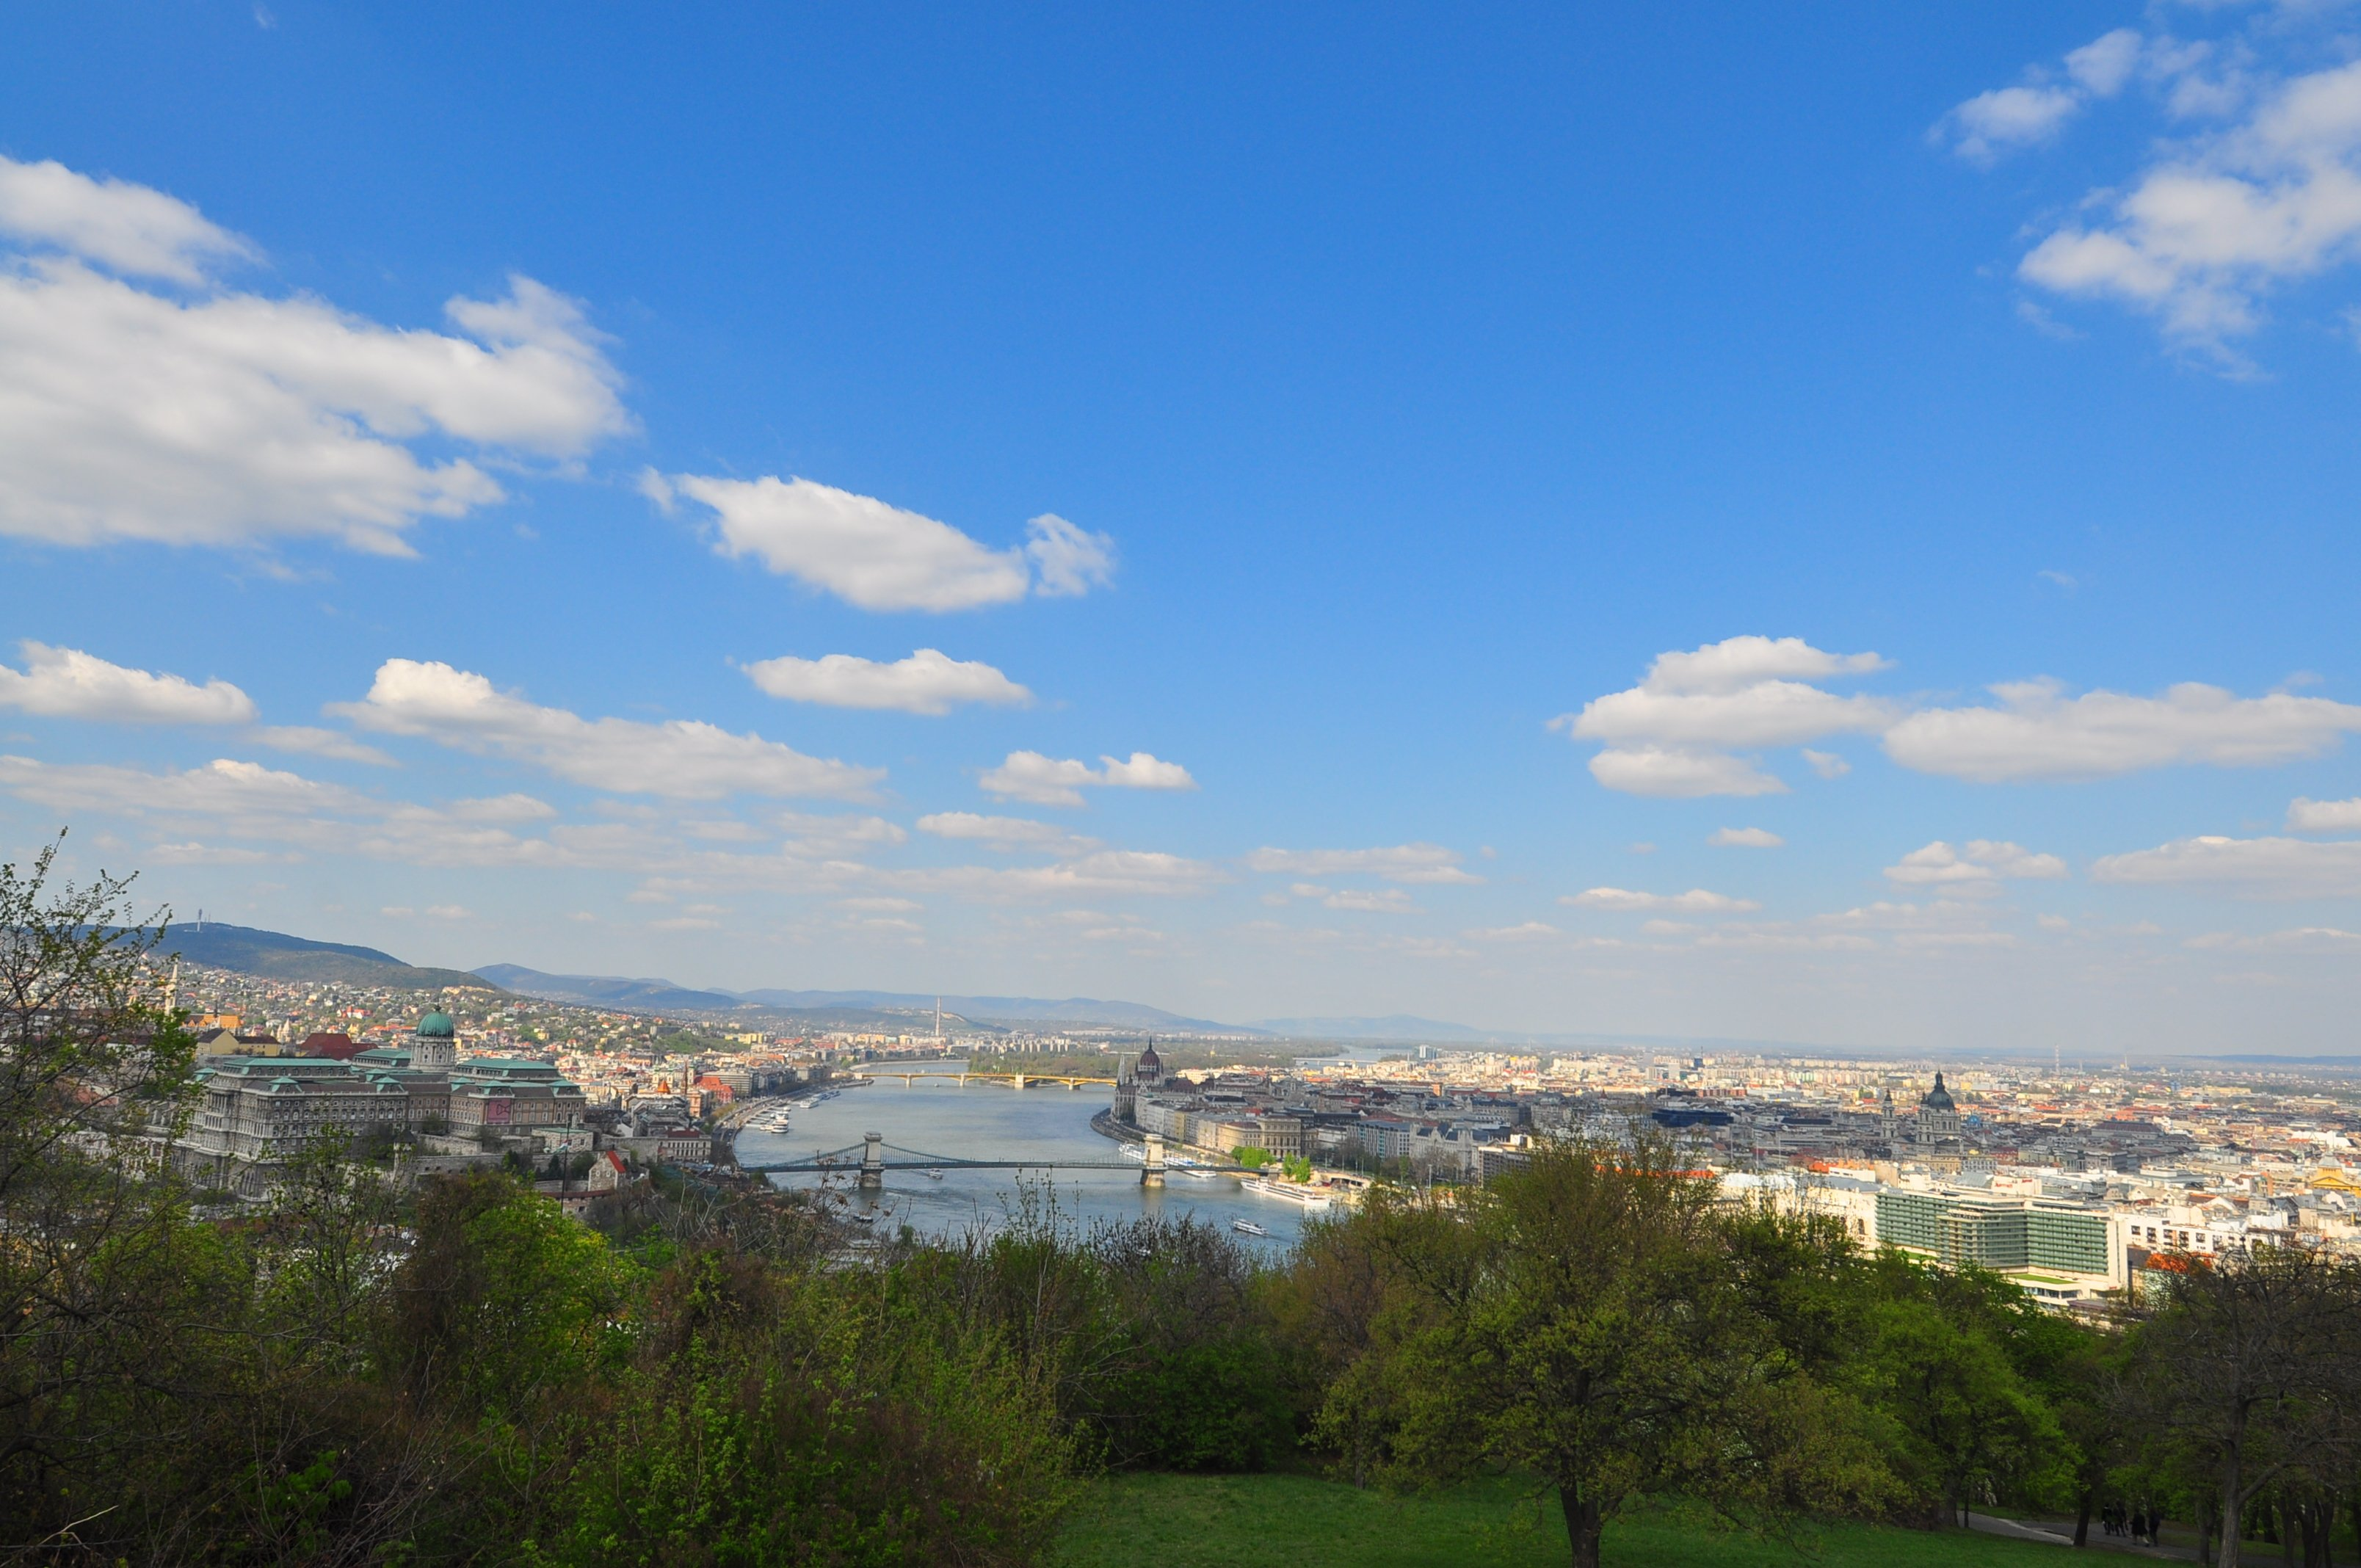 View over Budapest from the Gellert Hill